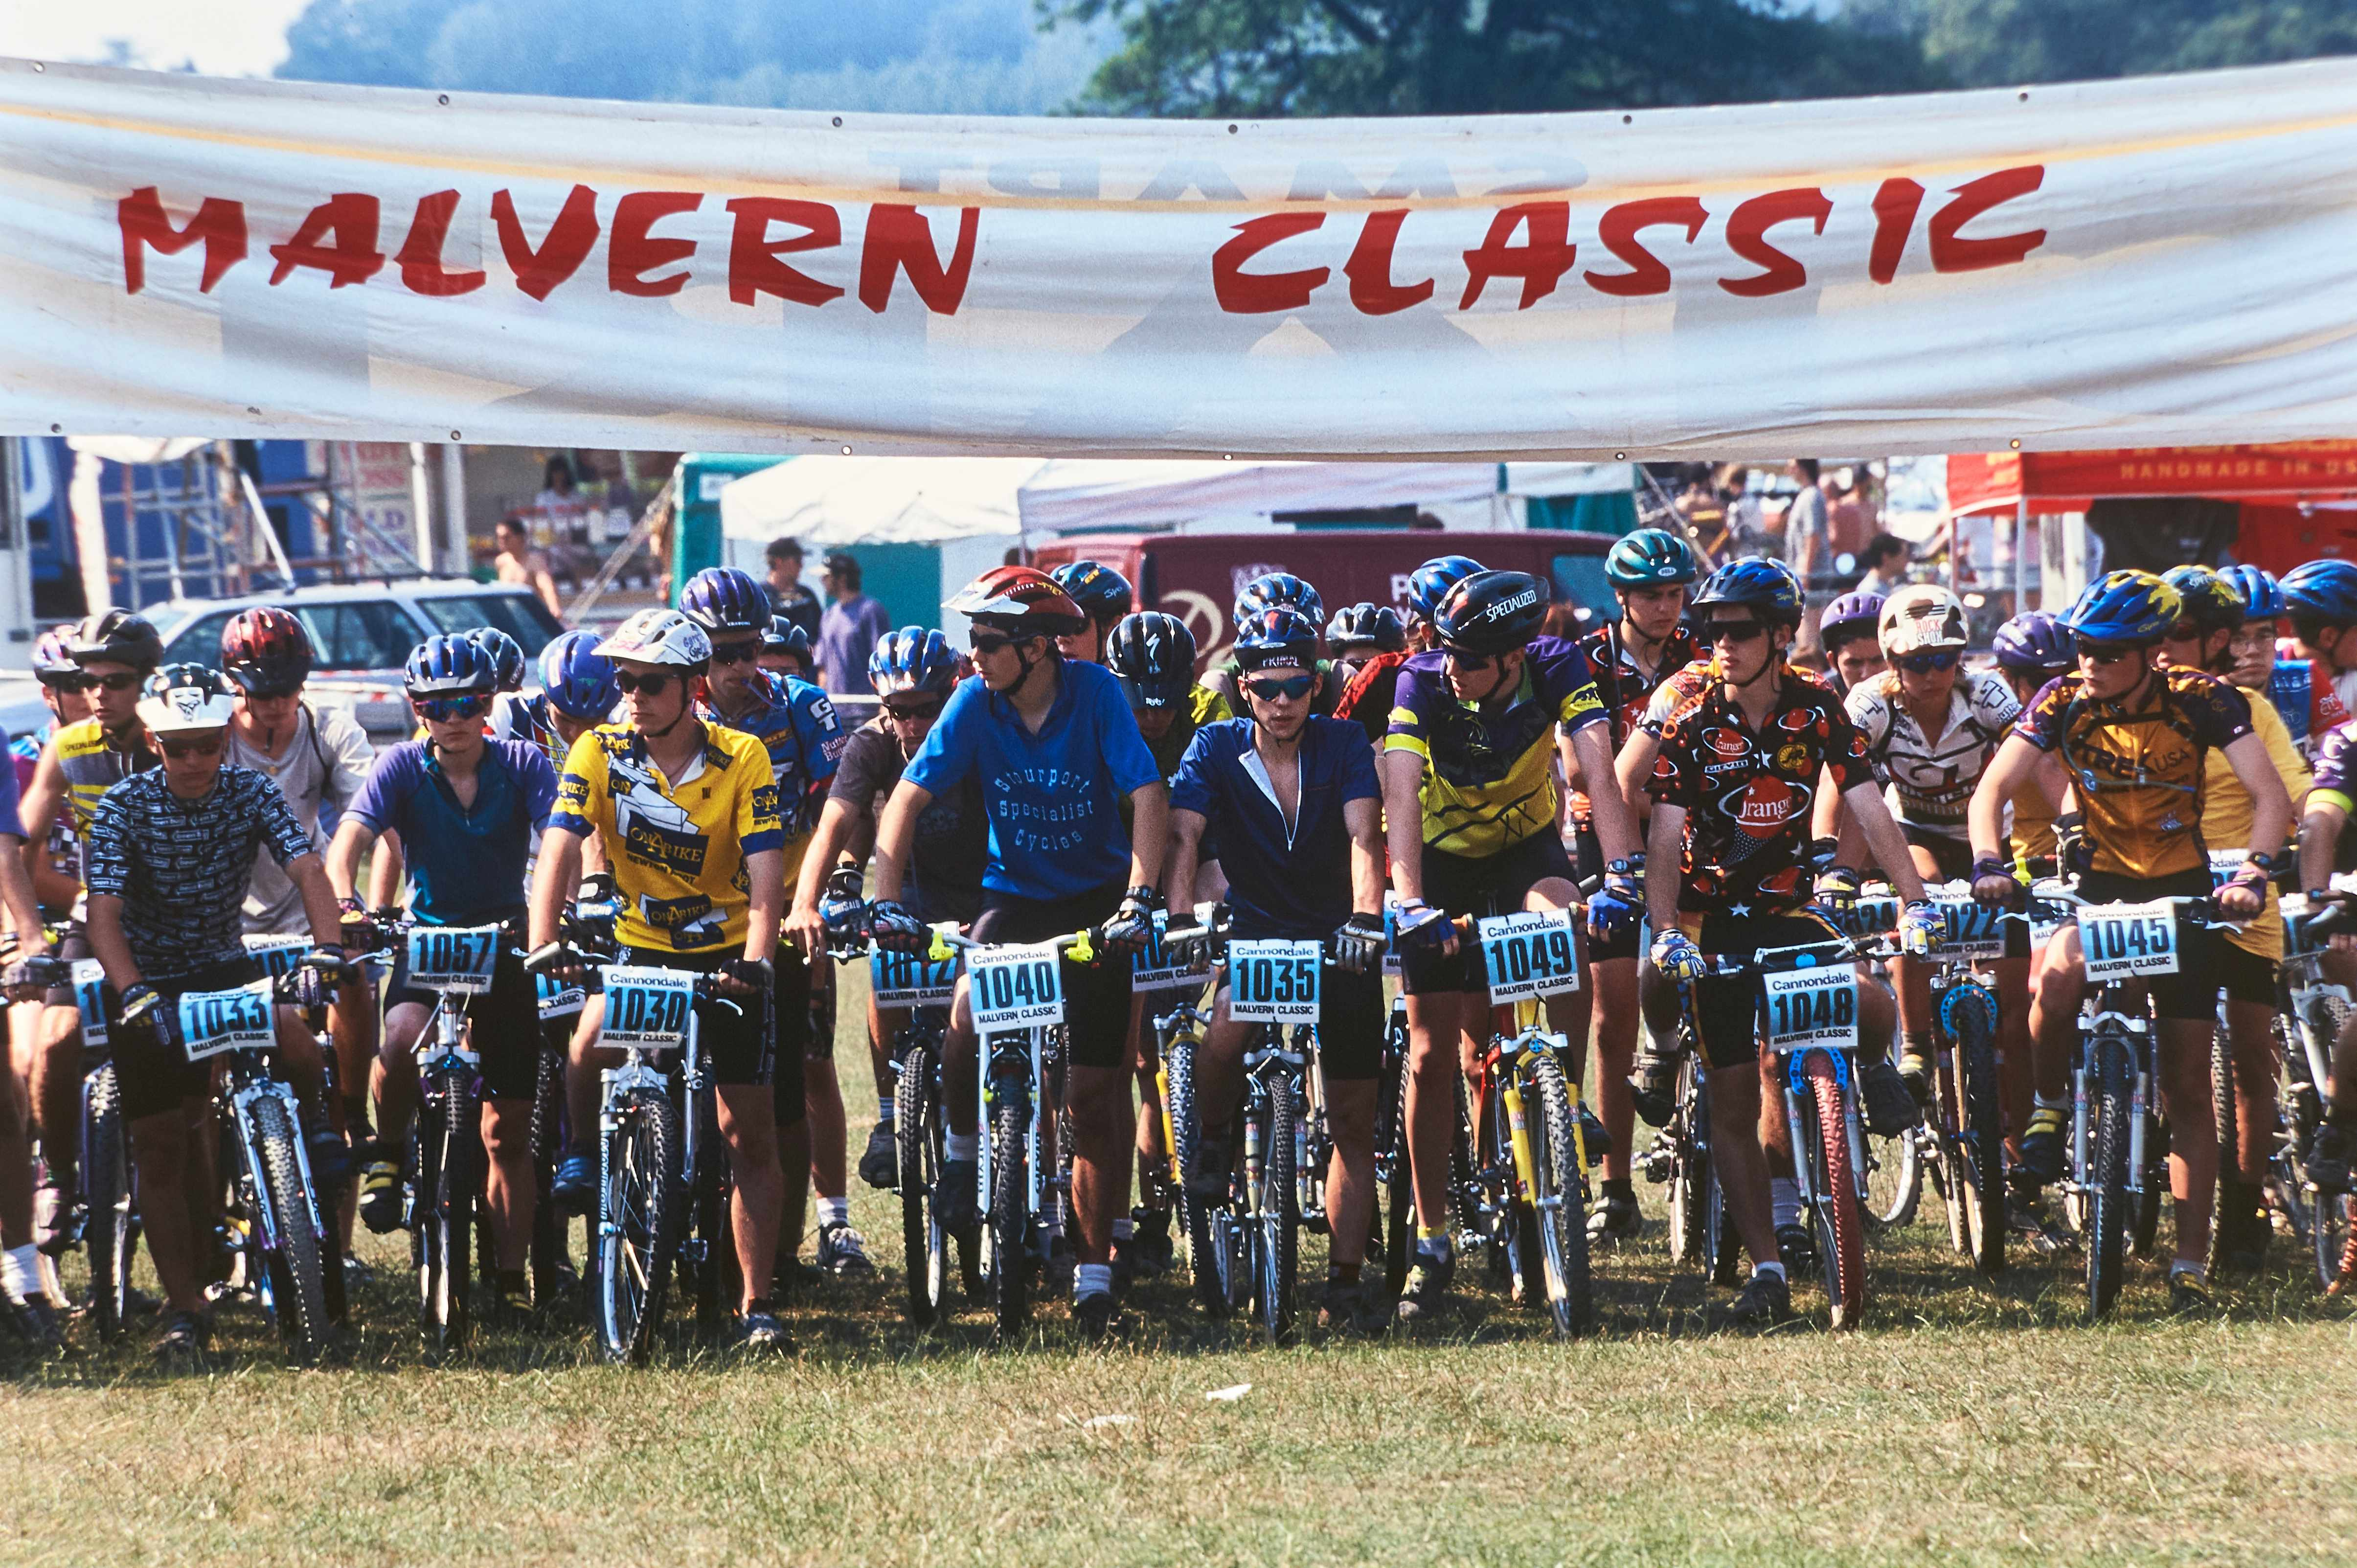 Malvern Classic mountain bike event , Eastnor Park , Ledbury . 1996 . Race Start line . 20111-04407-02a .